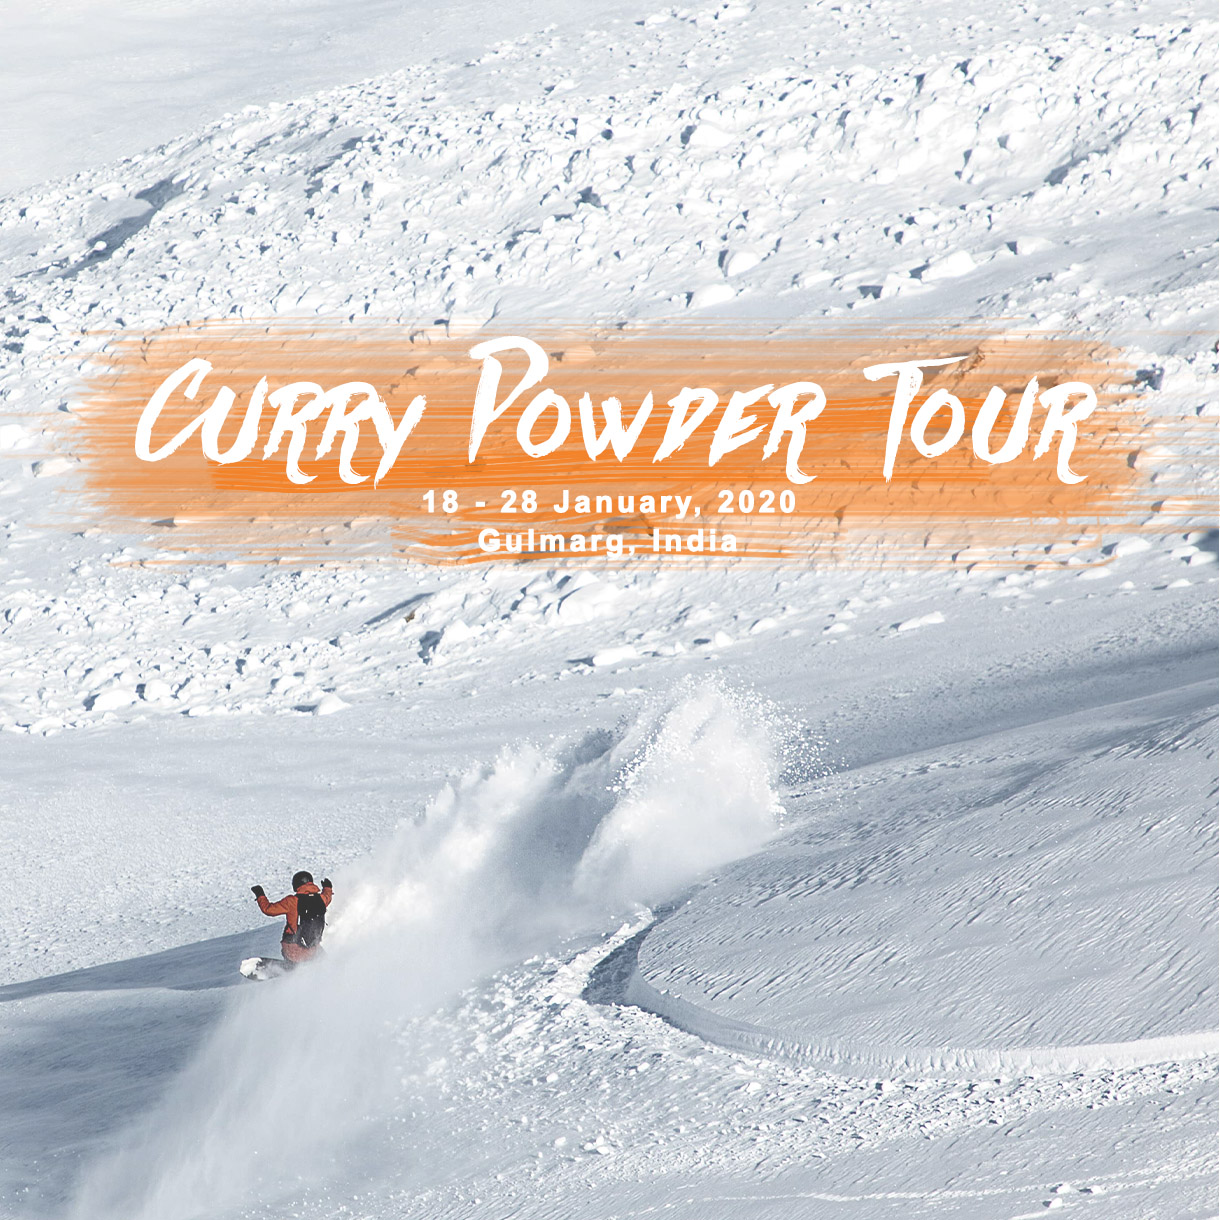 Curry powder tour 2020 First Tours